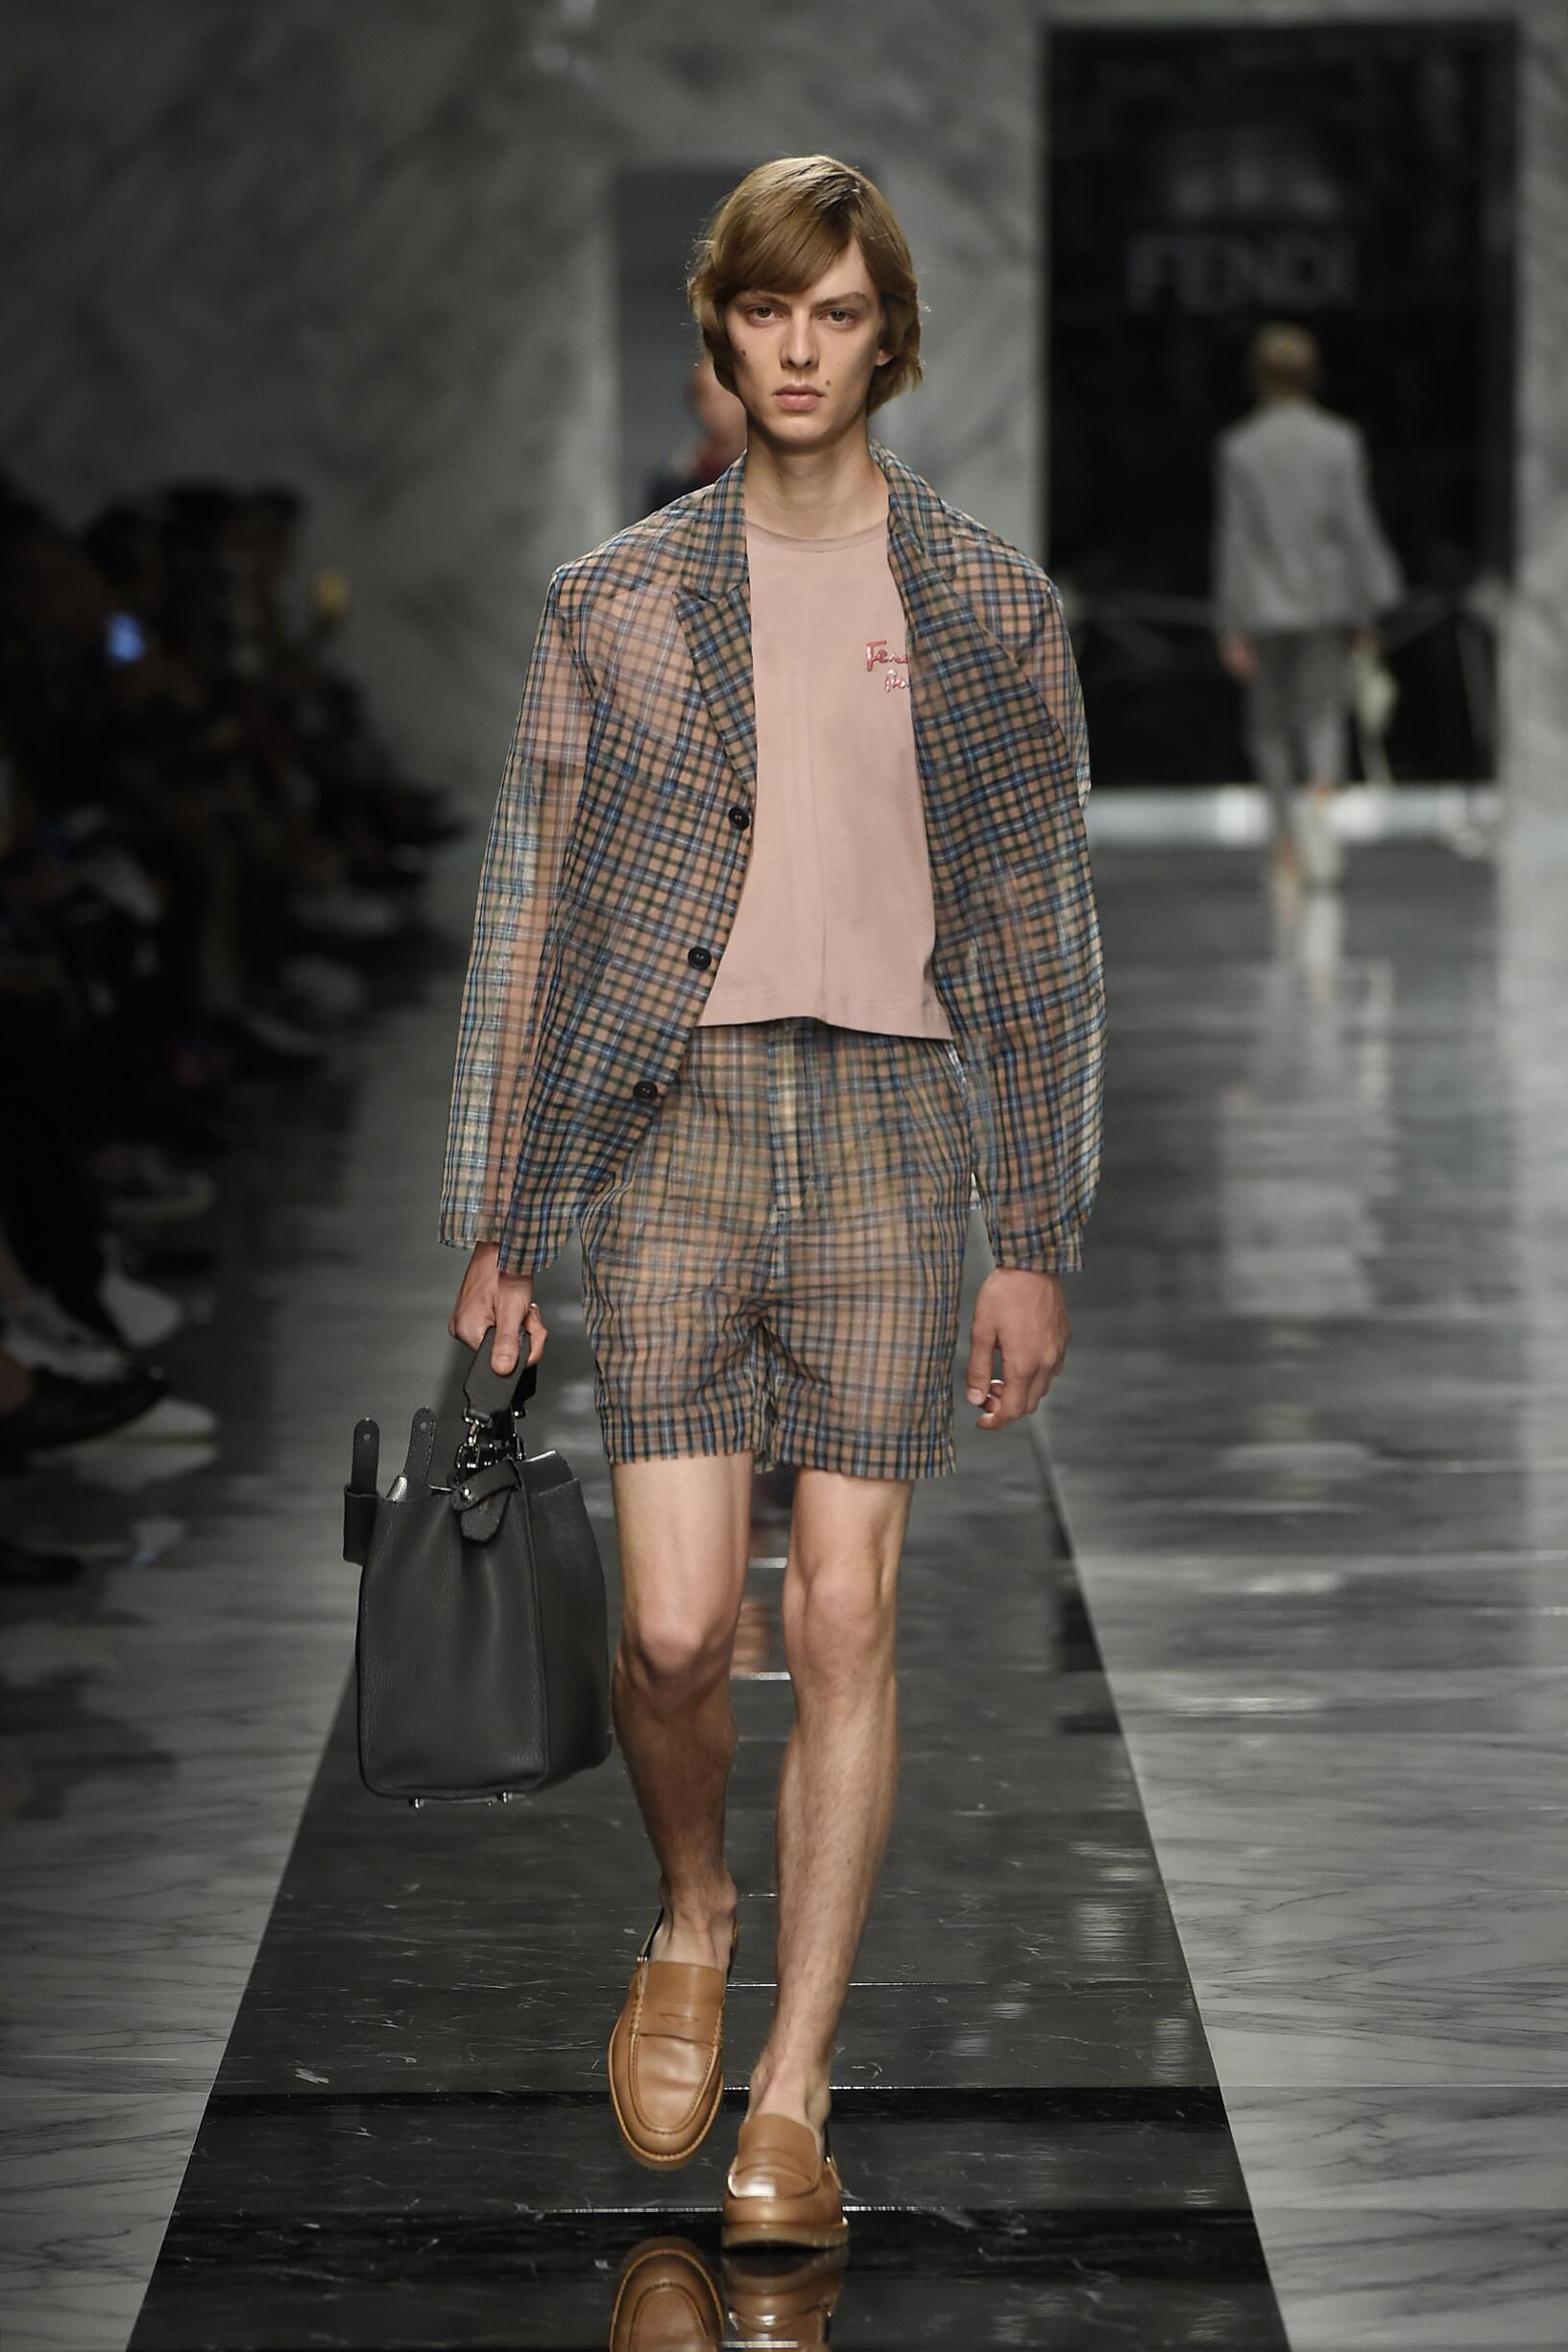 FENDI SPRING SUMMER 2018 MEN'S COLLECTION